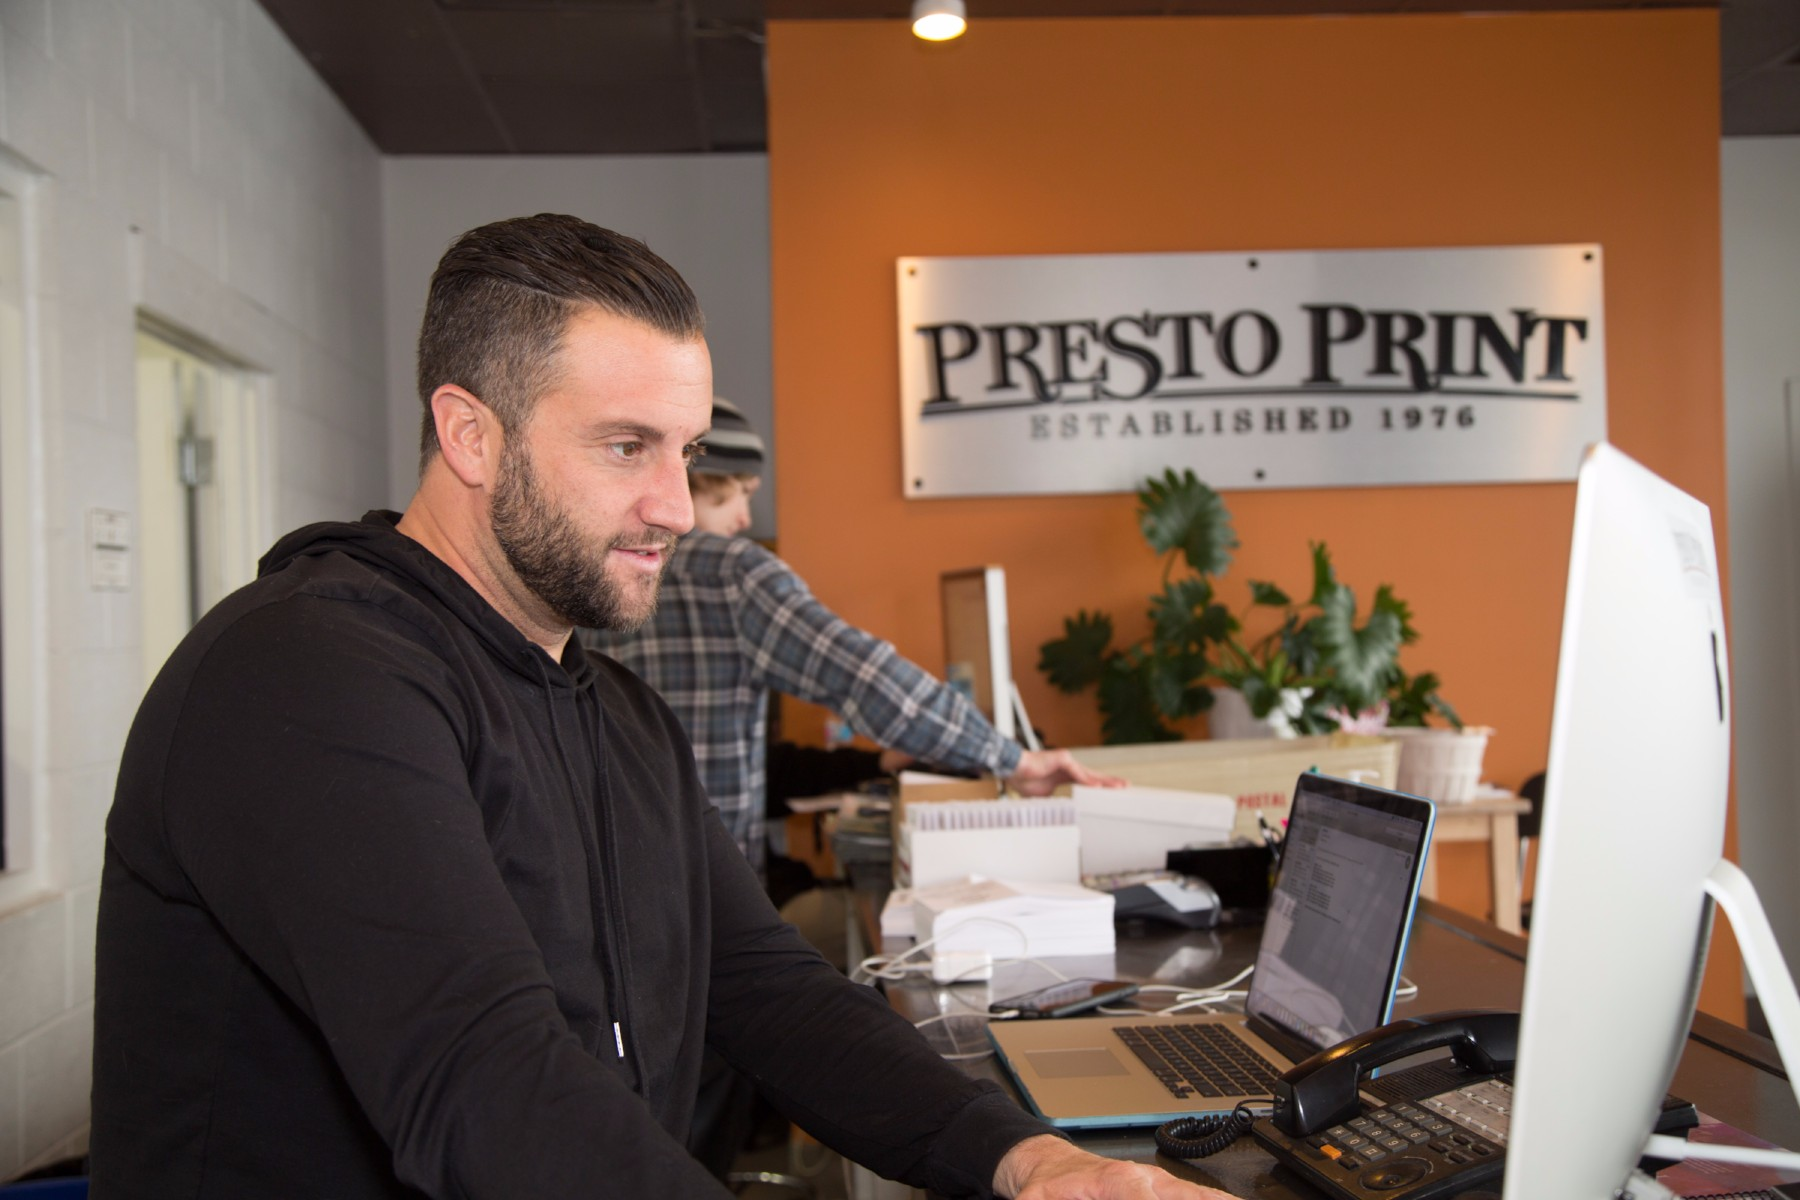 Presto Print employee offering printing services